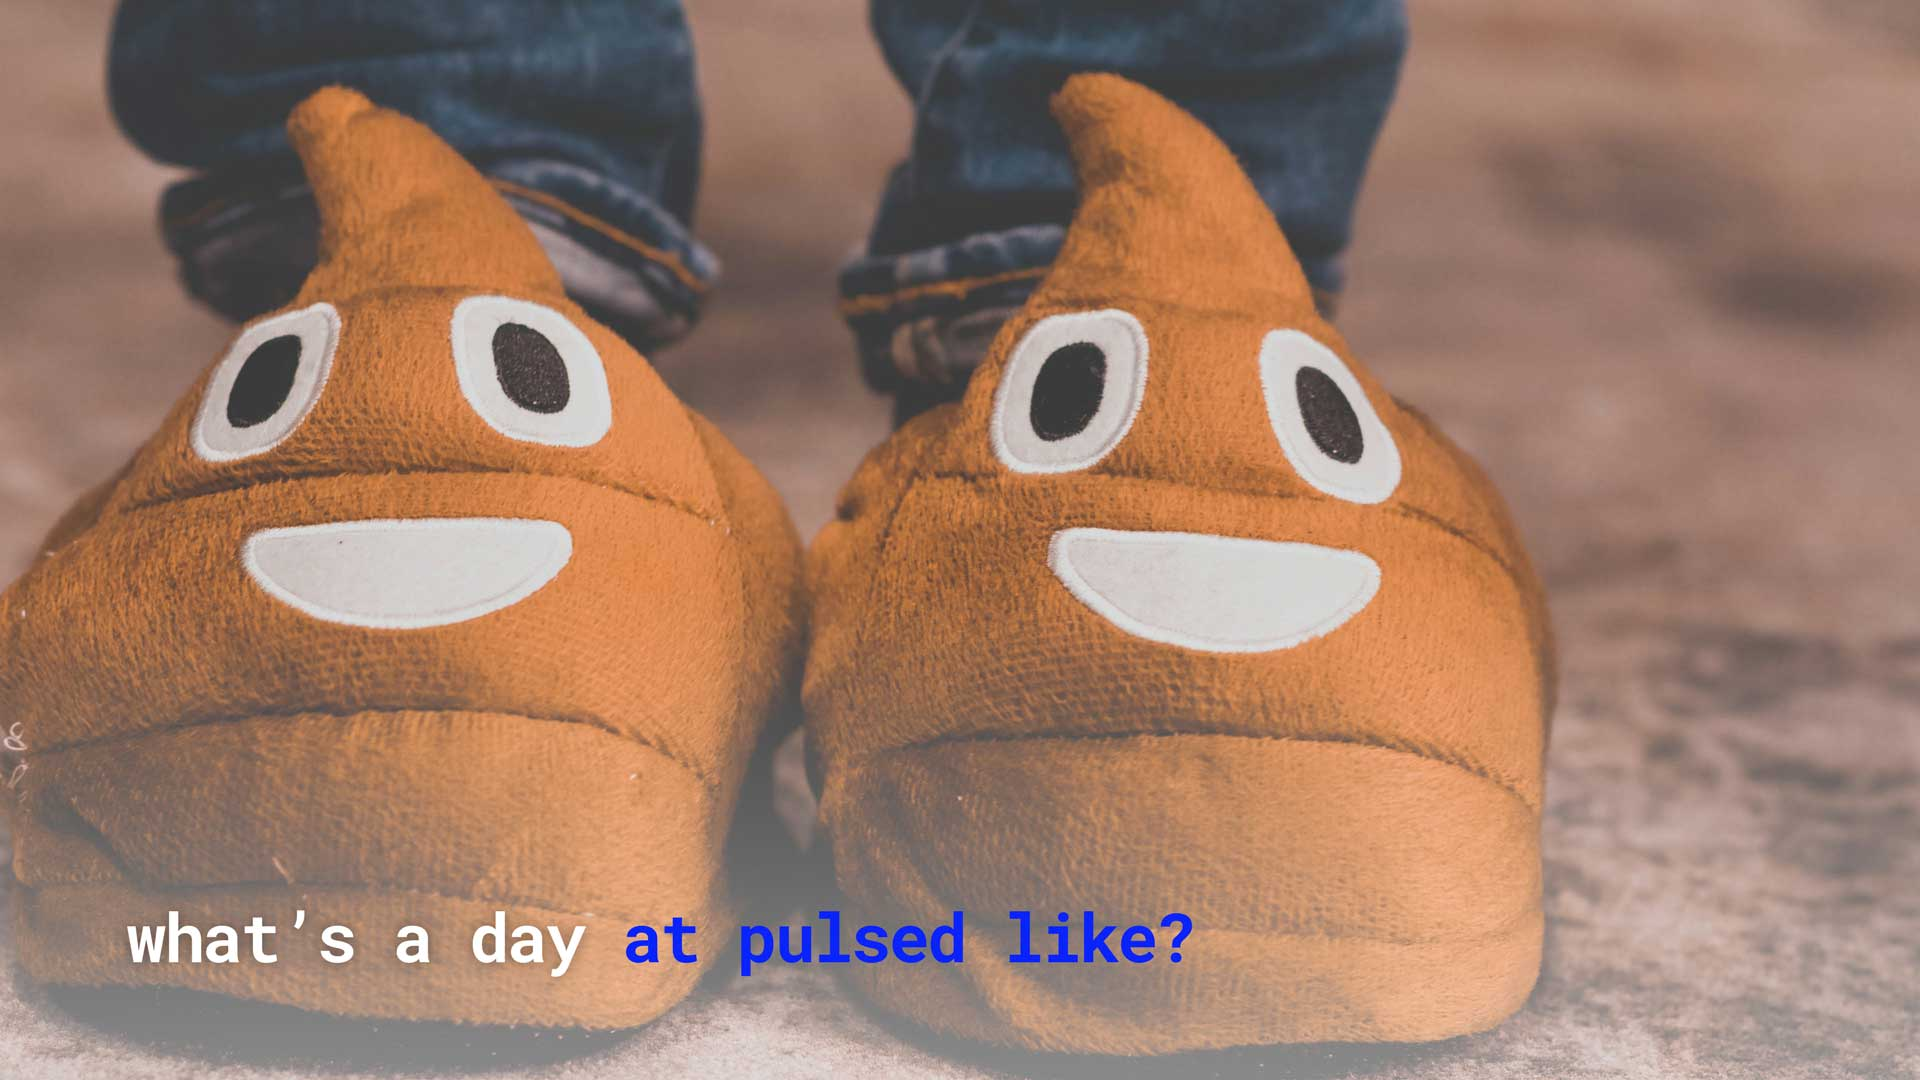 Vimeo video that answers the question of 'what's a day at pulsed like?'